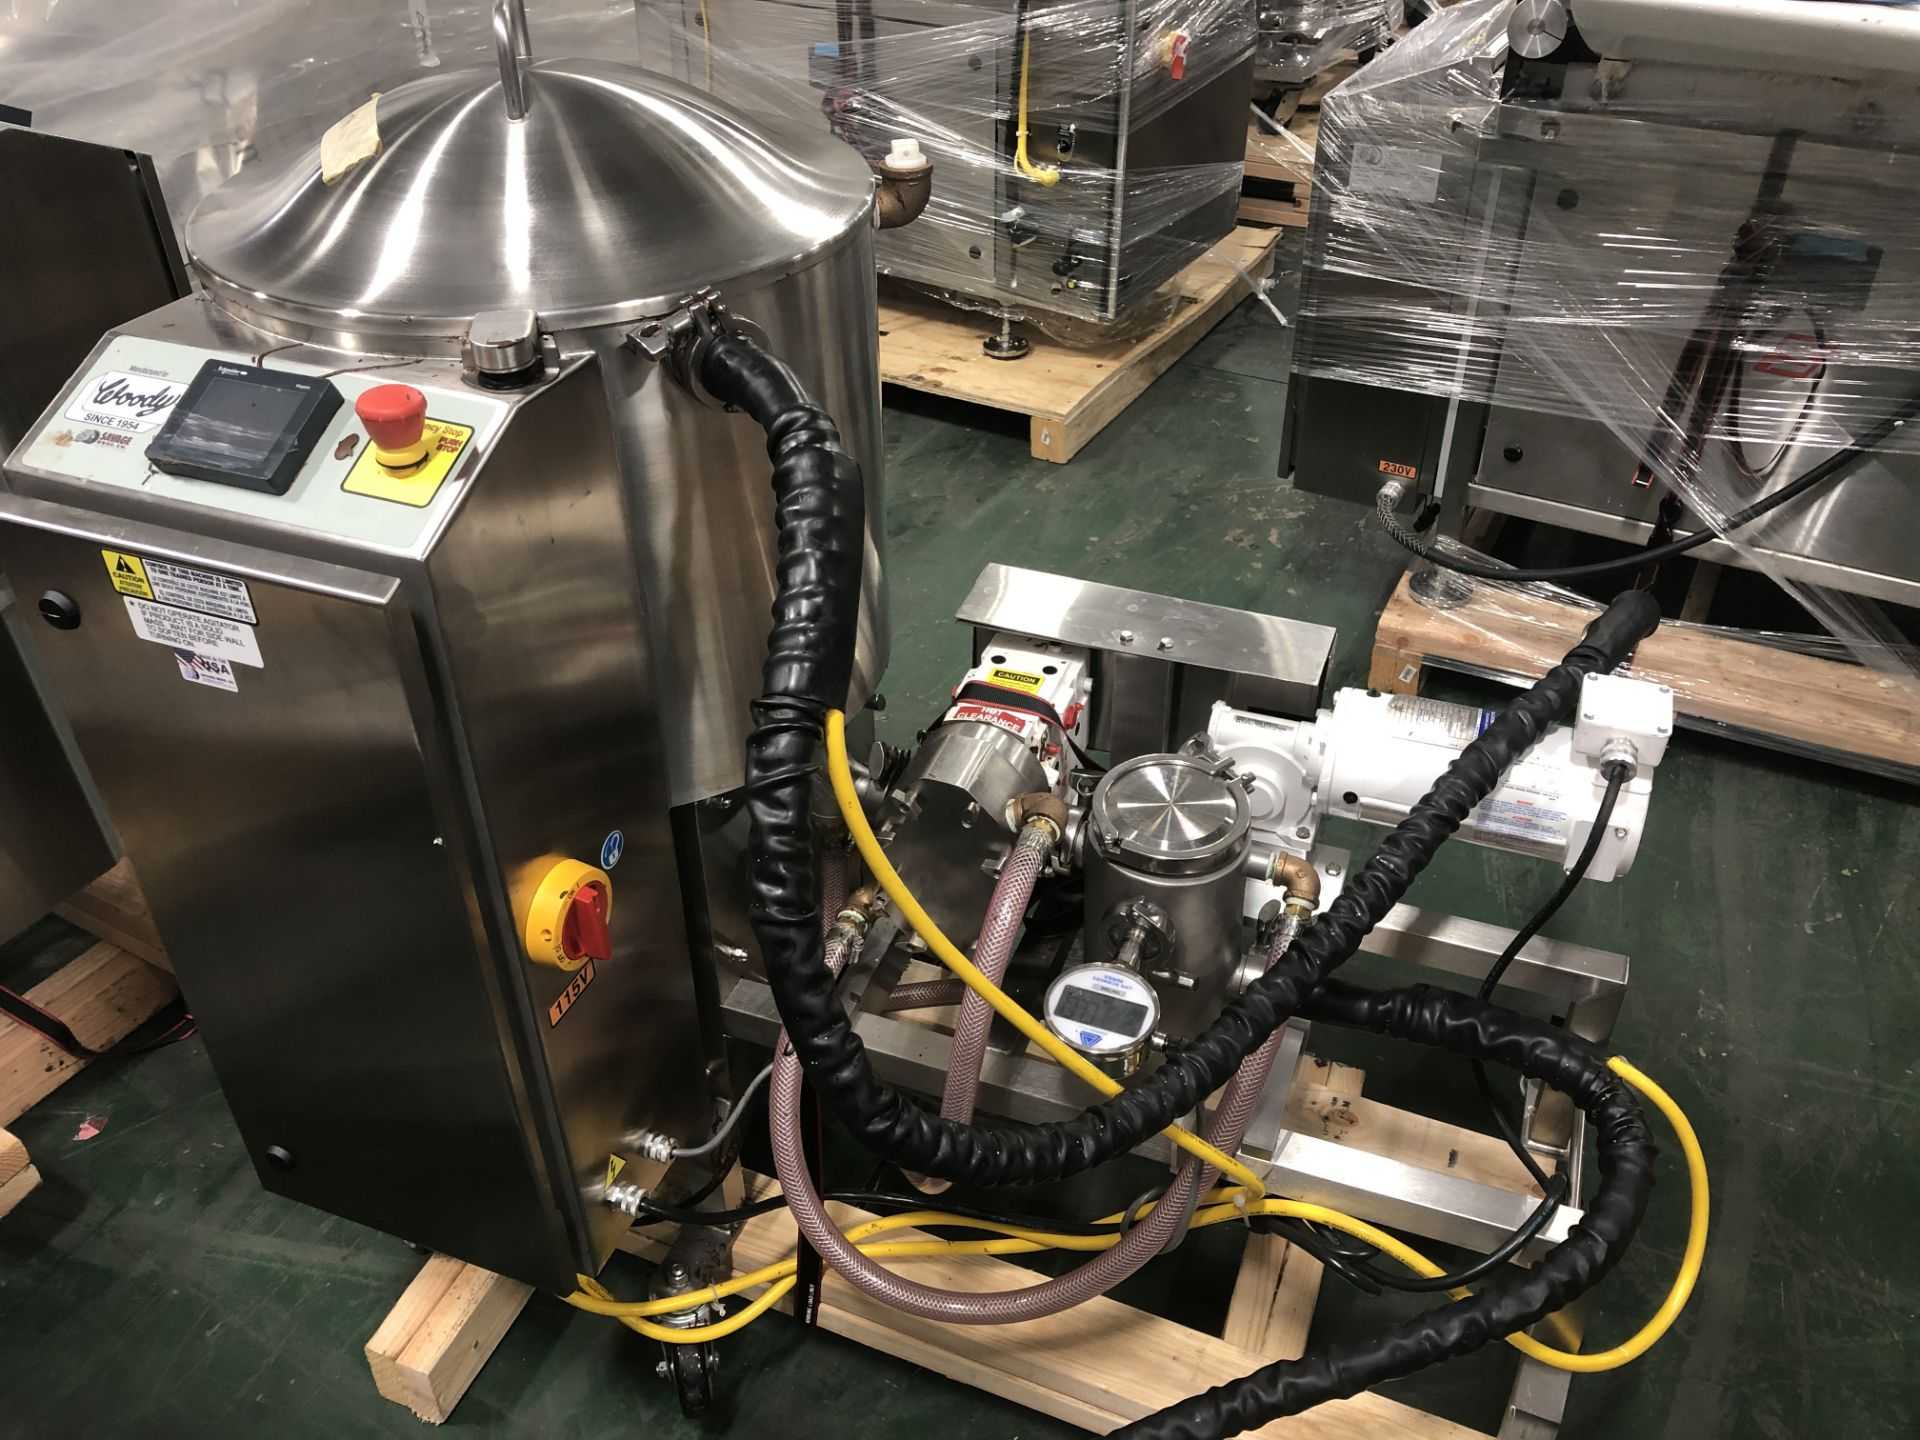 Lot 19 - Savage/Woody 125 lb Stainless Steel Chocolate Melter with Touchscreen controls -Jacketed and